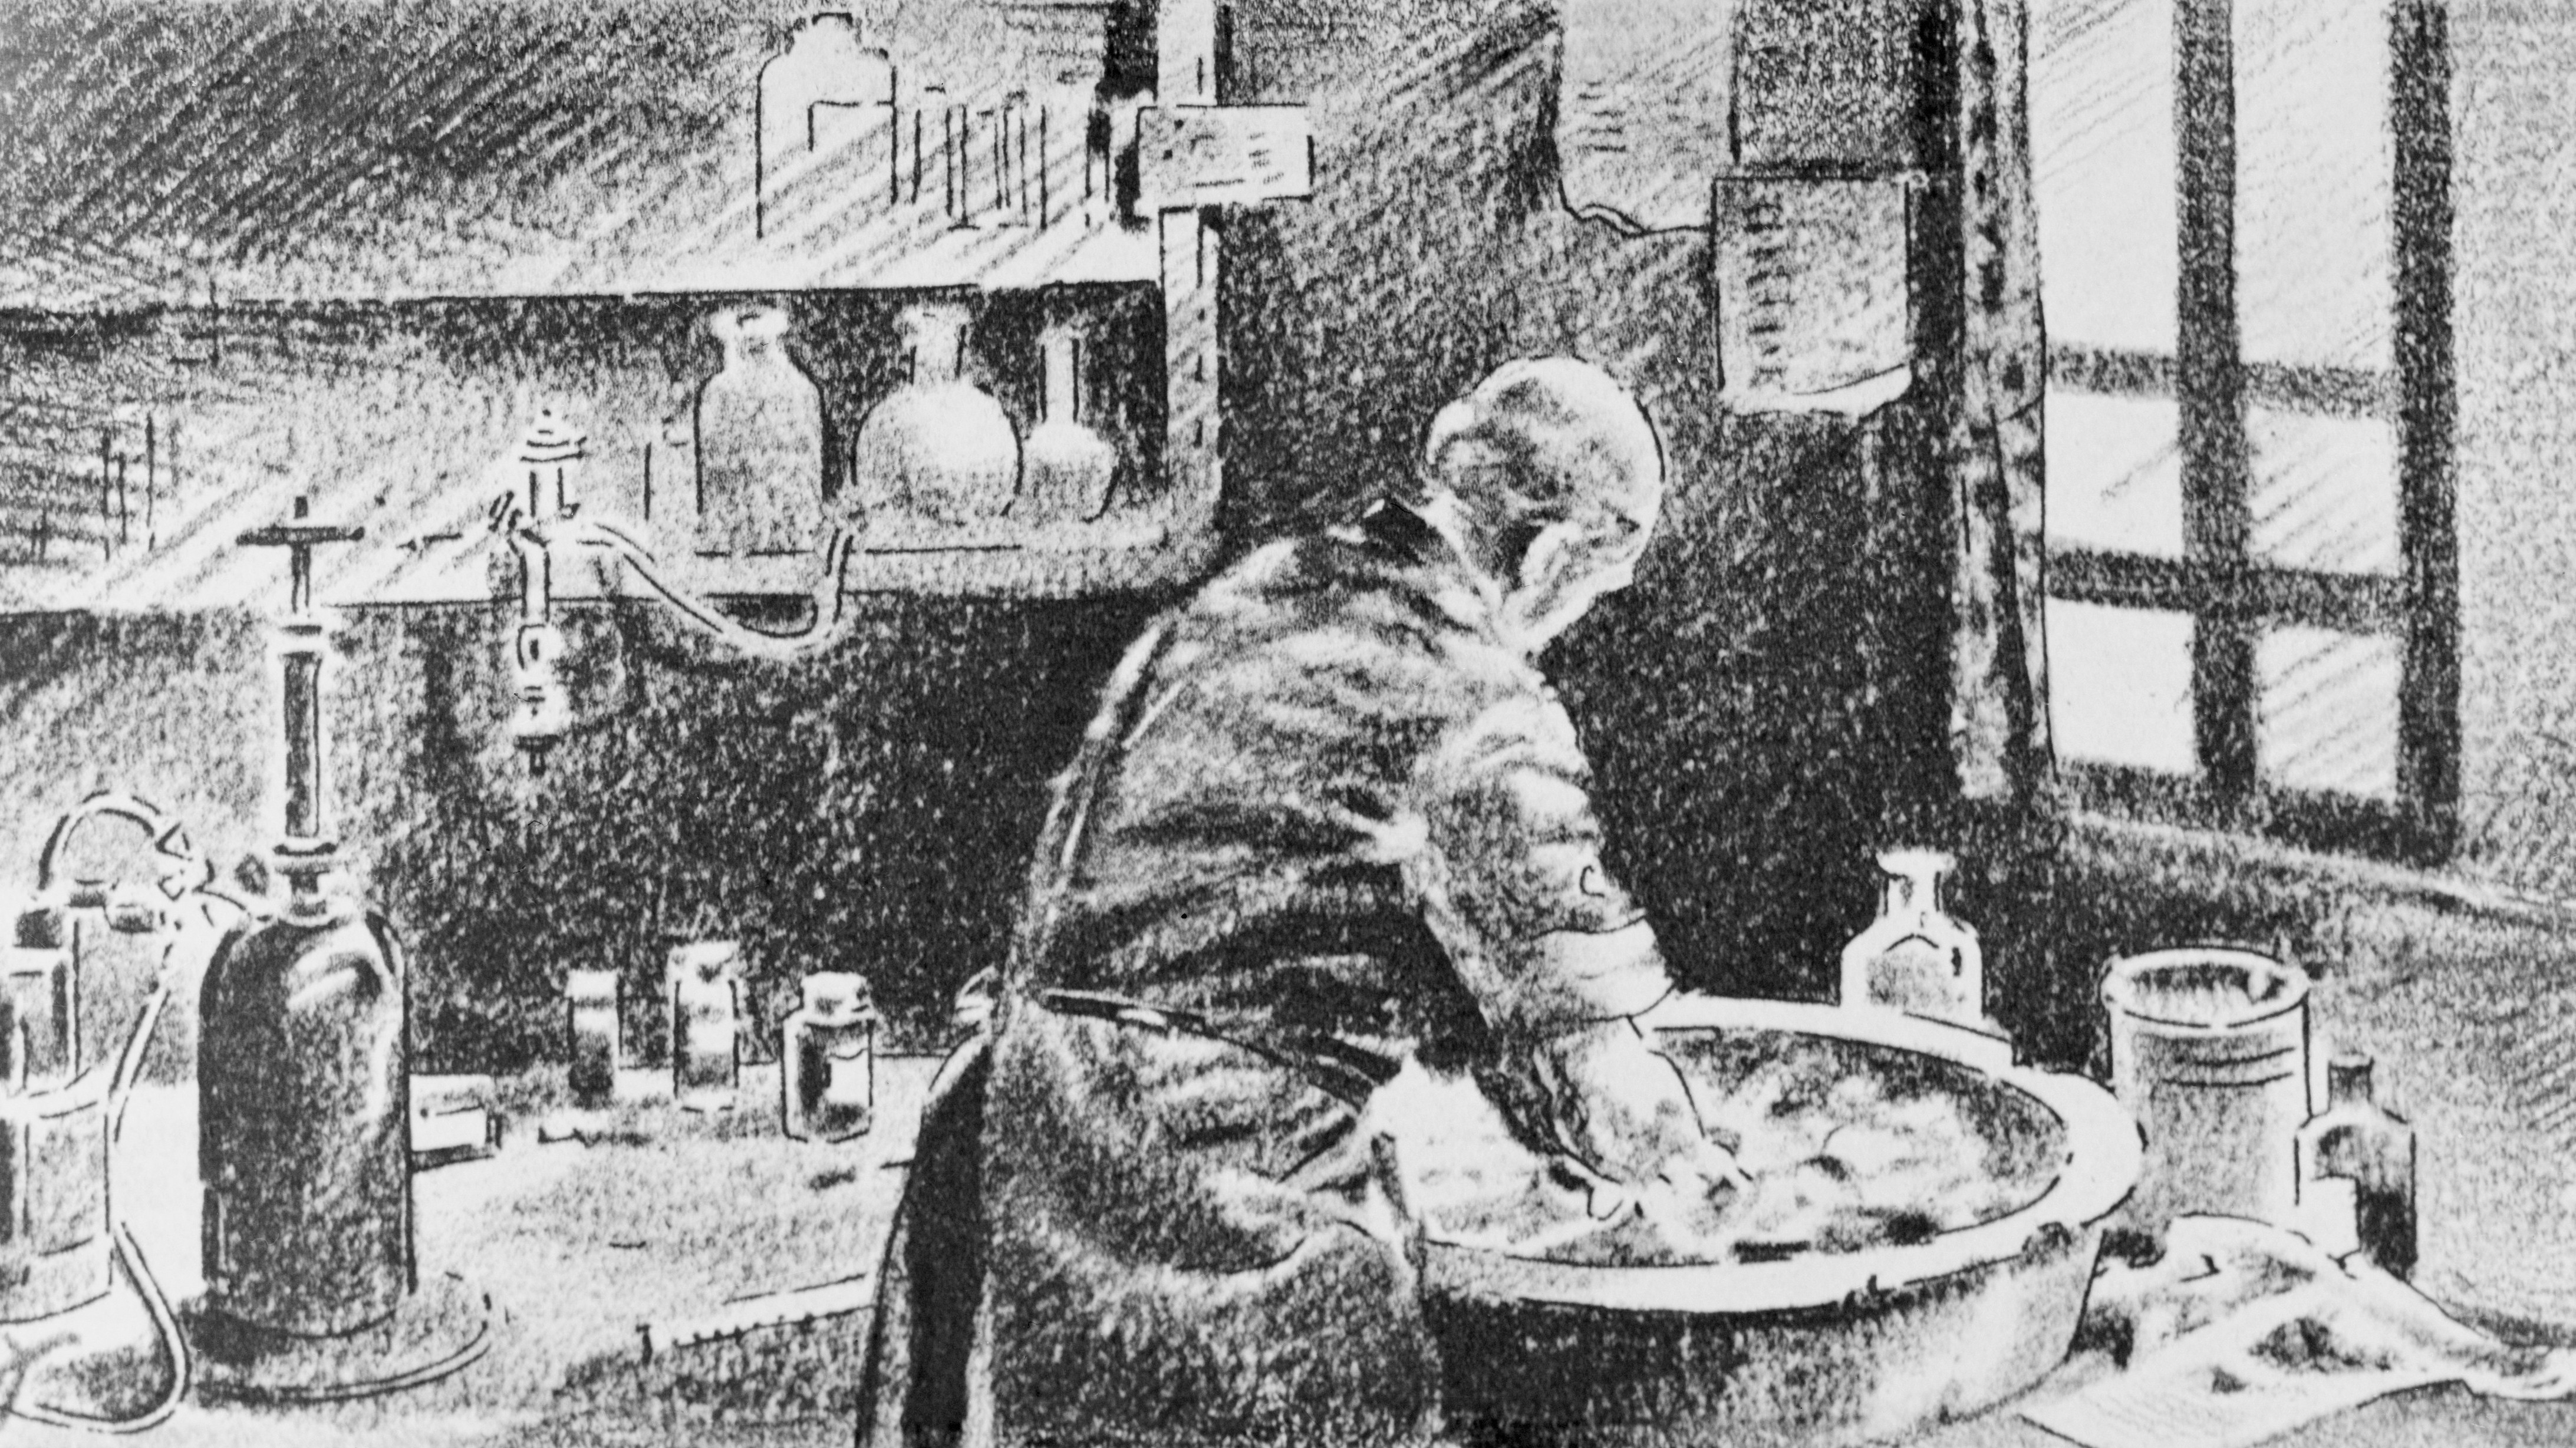 The Doctor Who Championed Hand-Washing And Briefly Saved Lives